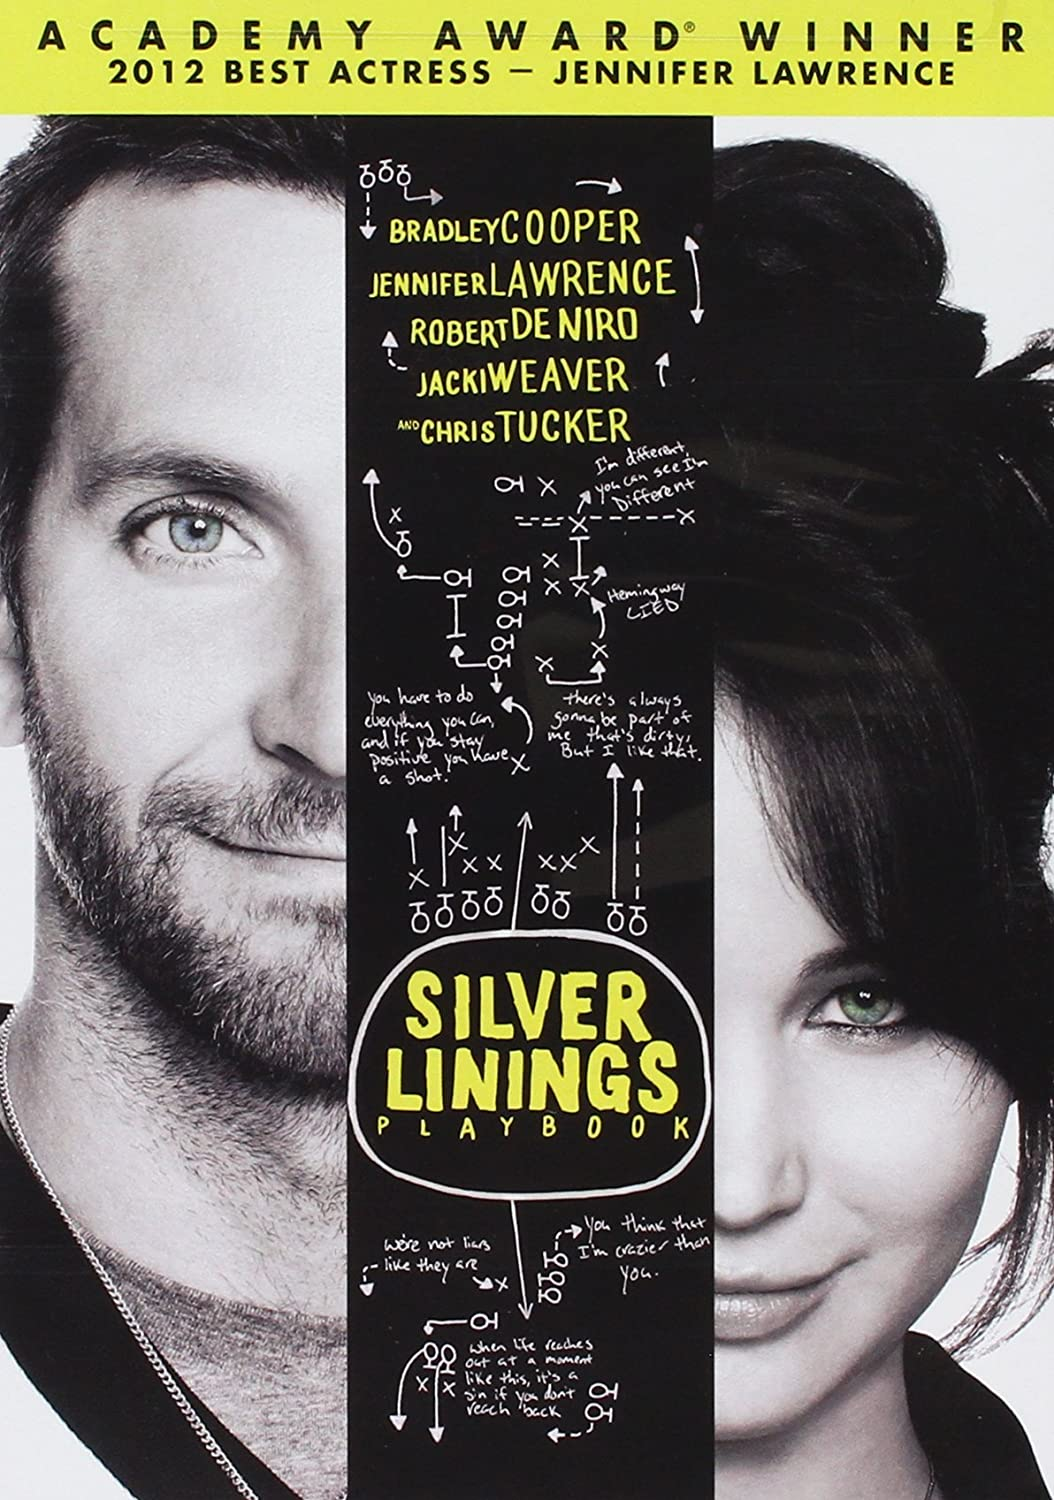 Silver Linings Playbook. Directed by David O. Russell